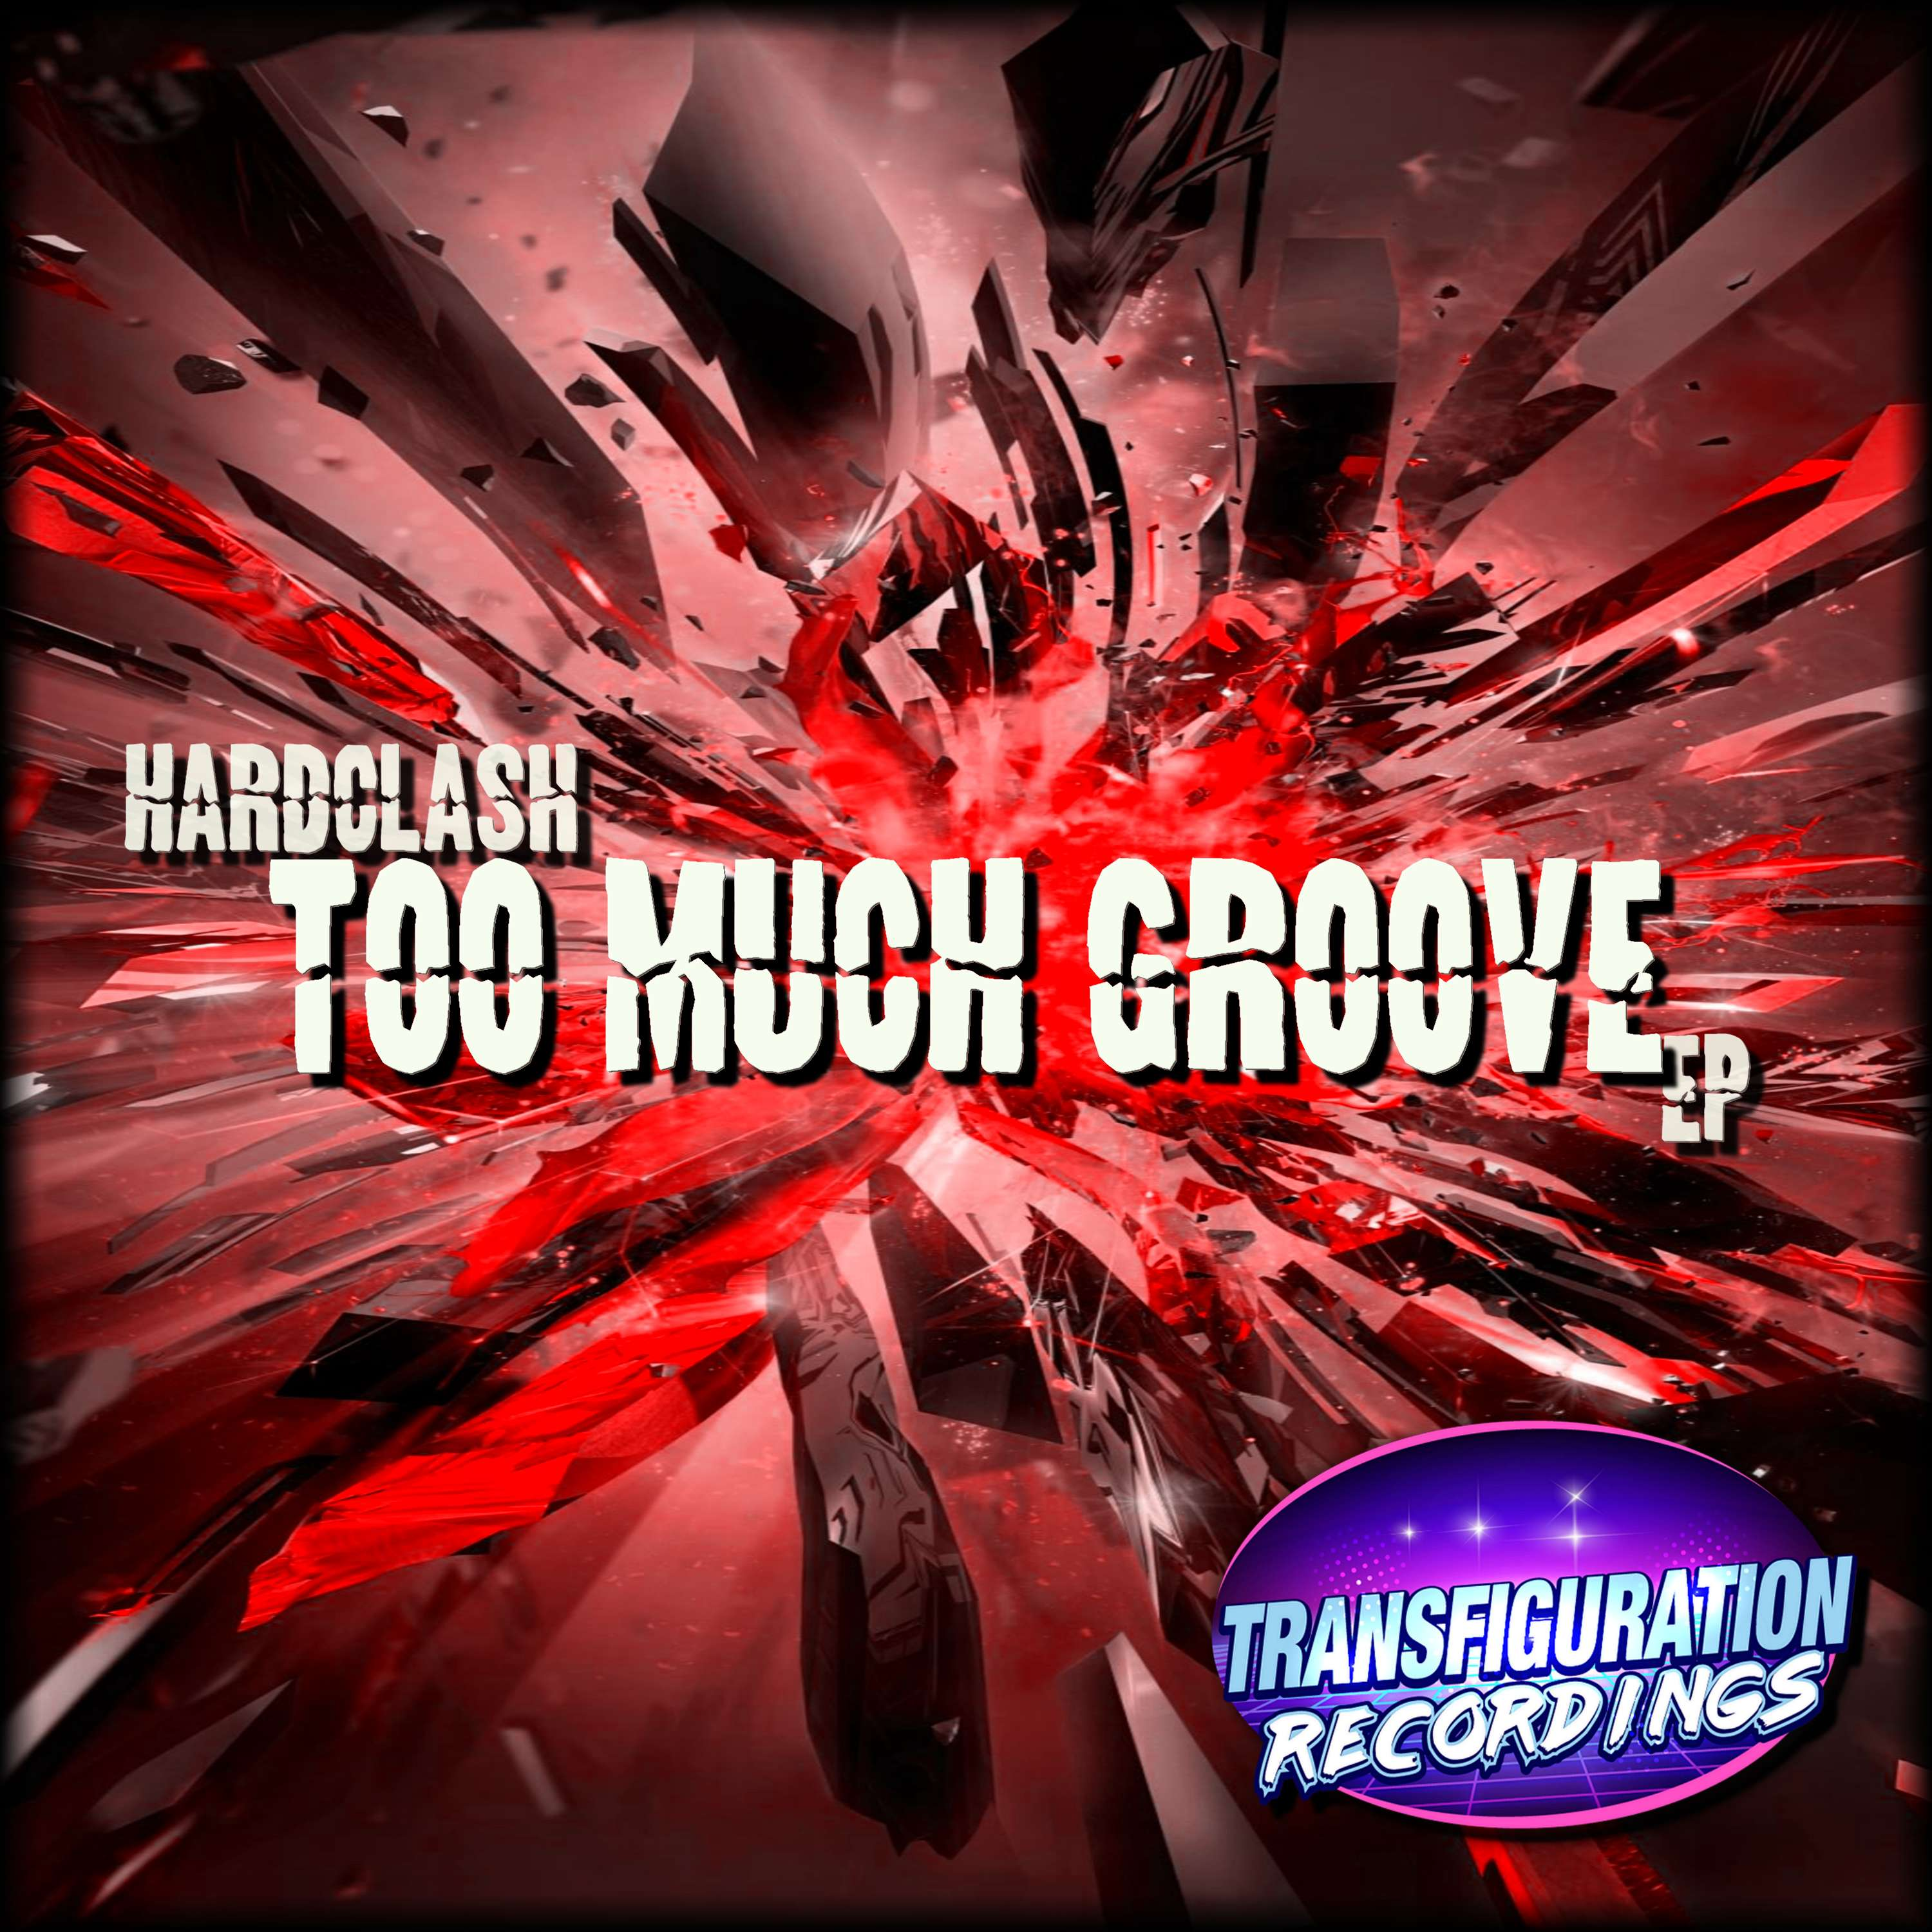 Too Much Groove EP